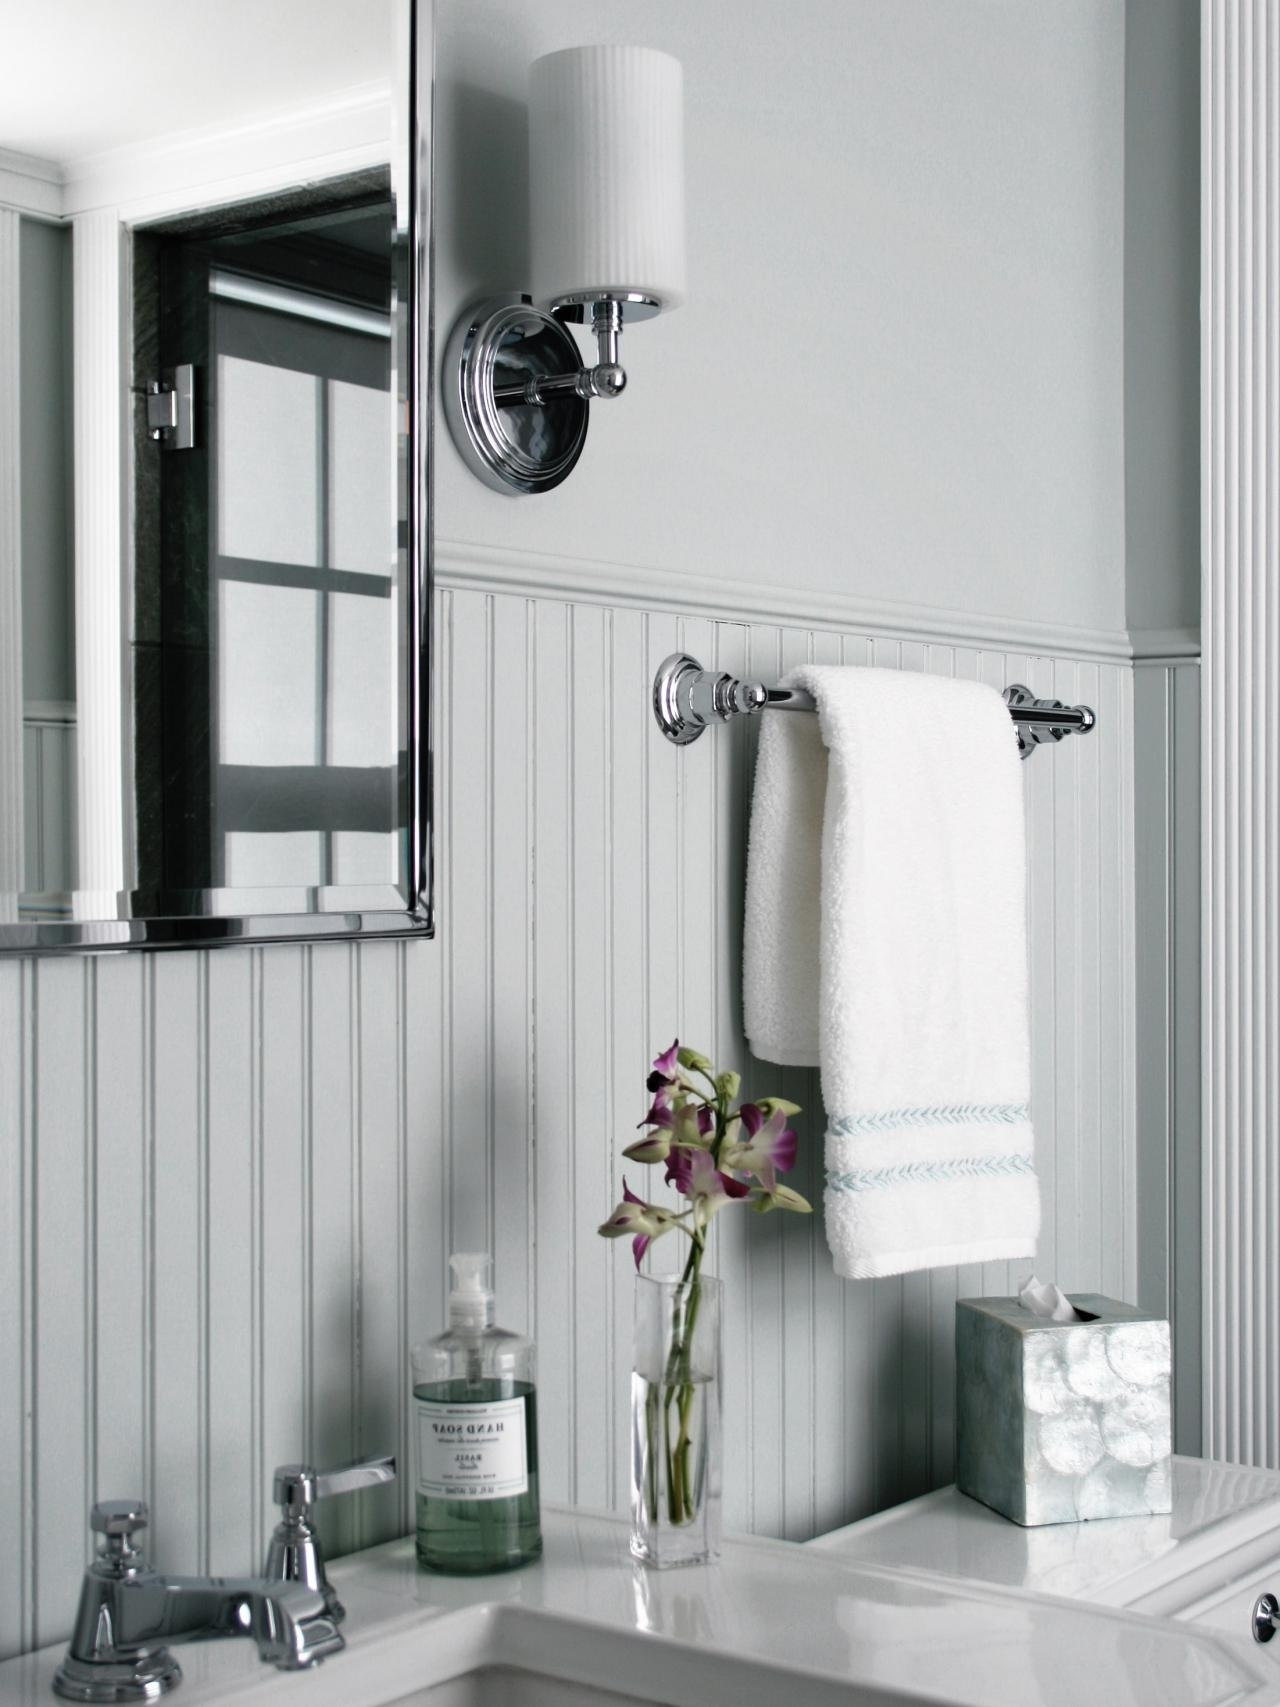 Beadboard Bathroom Designs: Pictures & Ideas From Hgtv | Hgtv 10+ Small Bathroom Designs With Wainscoting Ideas